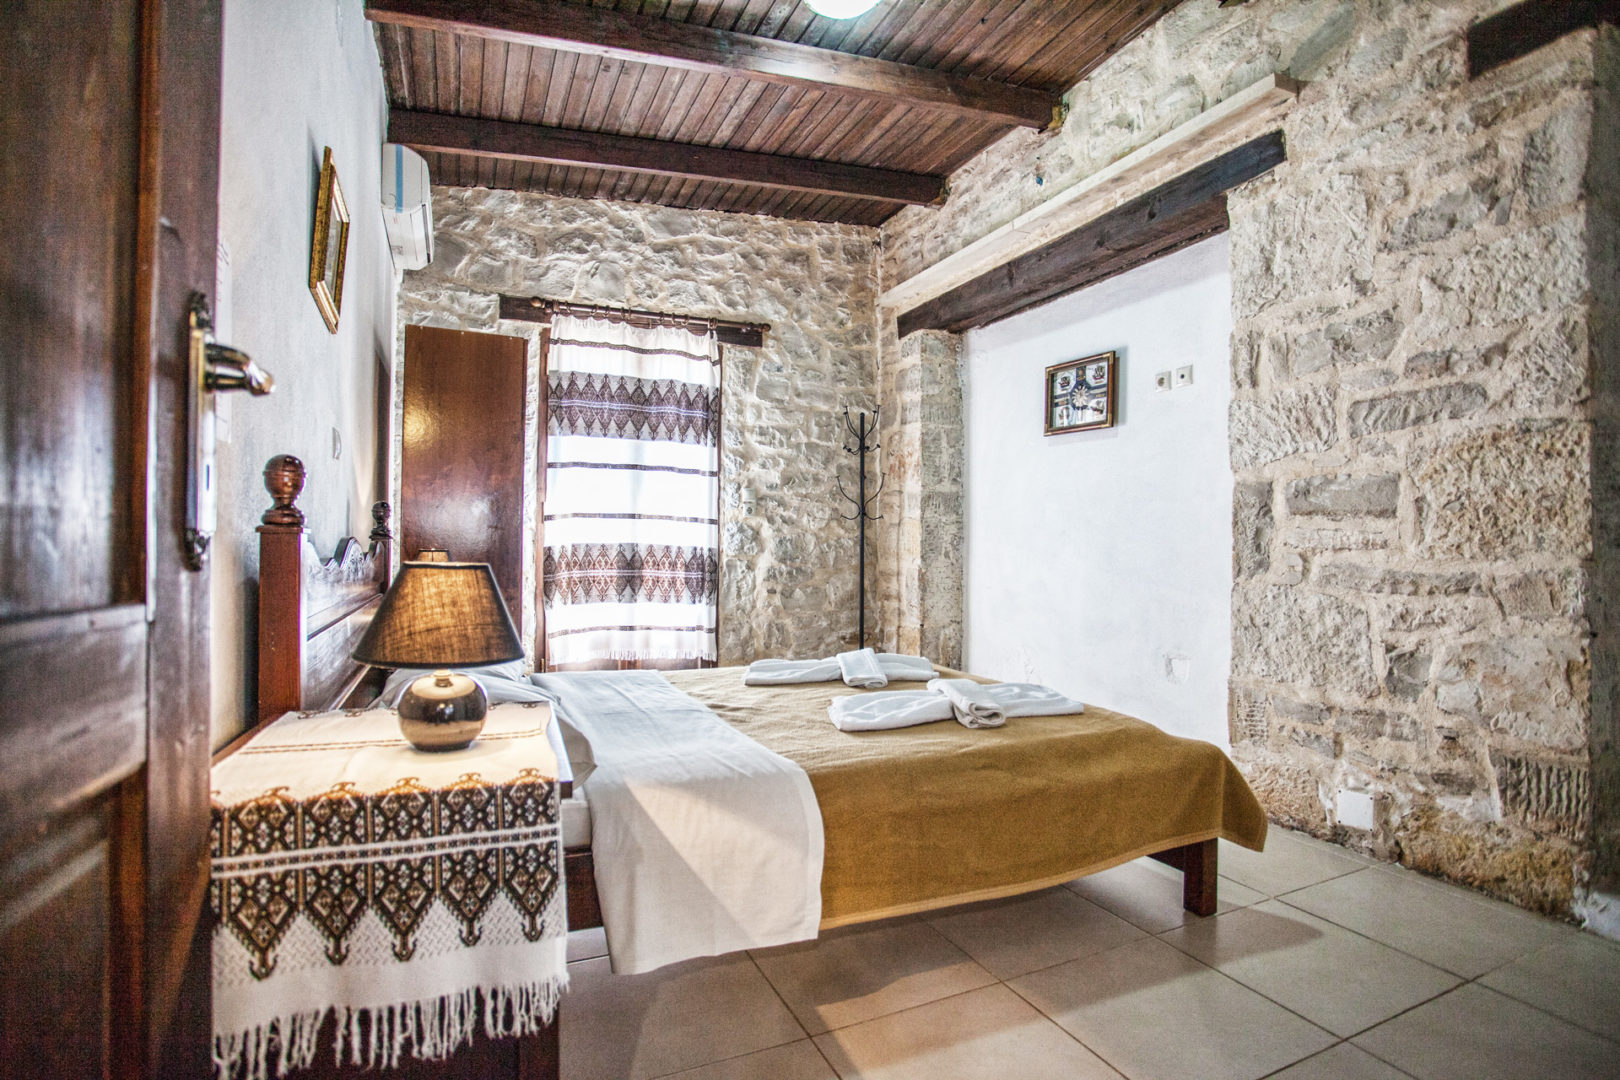 Accommodation in Bali Crete - Medium Maisonette 4 - Stone Village